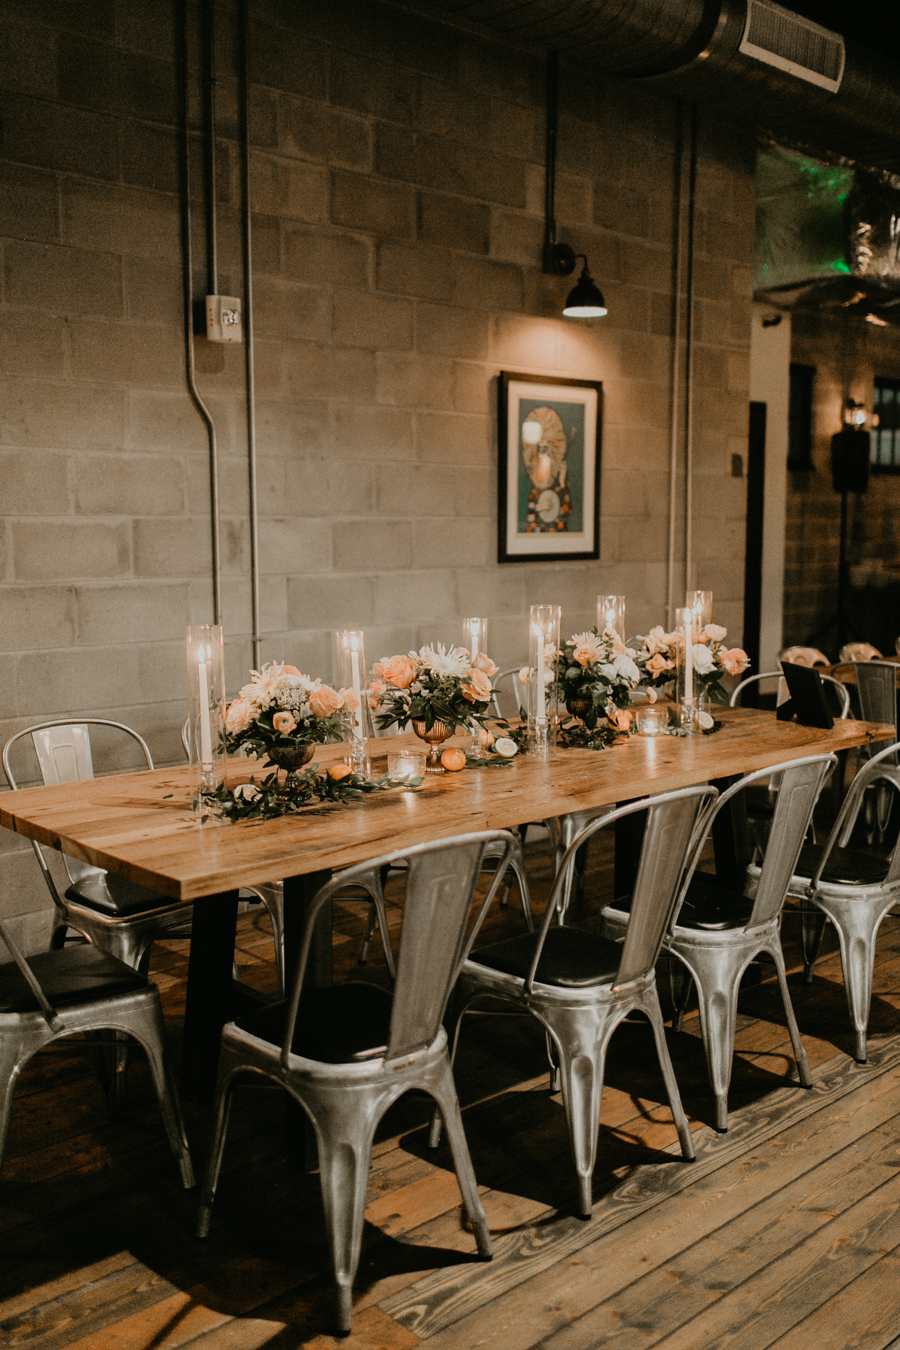 Stephanie And Kent Bailey Tampa Florida Romantic Wedding At Coppertail Brewery in Ybor Florist Fire BHLDN Mis En Place Ibex String Quartet Let Them Eat Cake -103.jpg